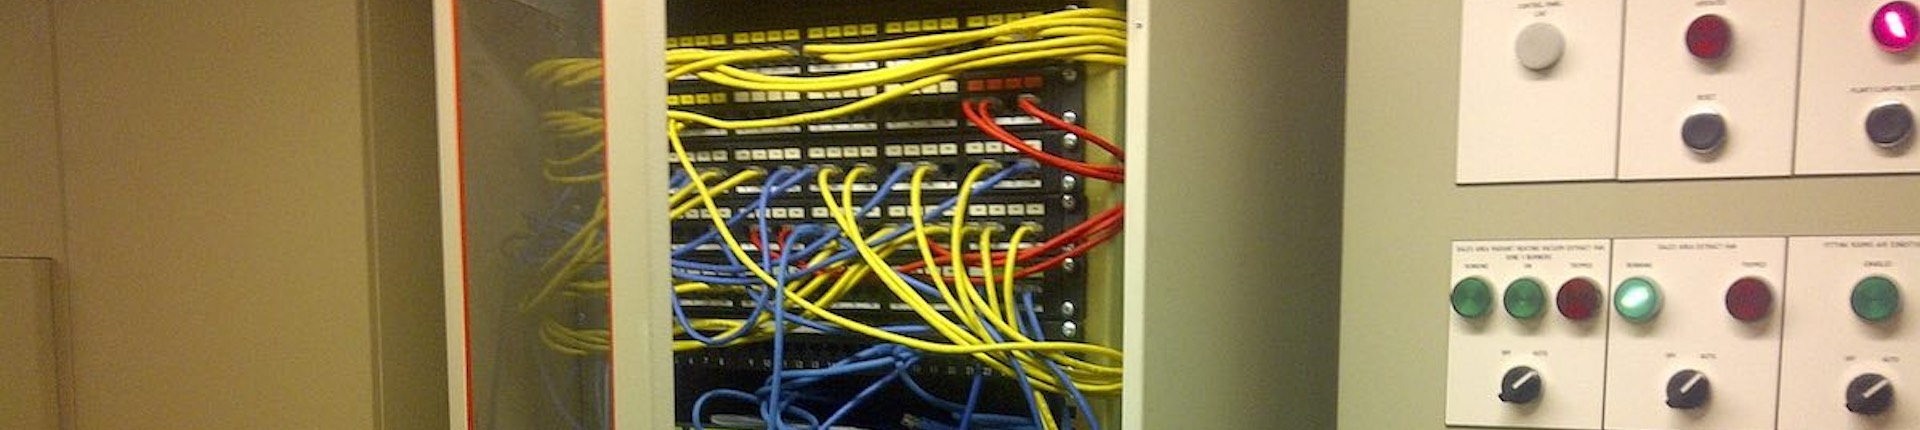 Control It Data Communications Structured Wiring Systems Image Controlits Capabilities Include The Installation Of Cabling